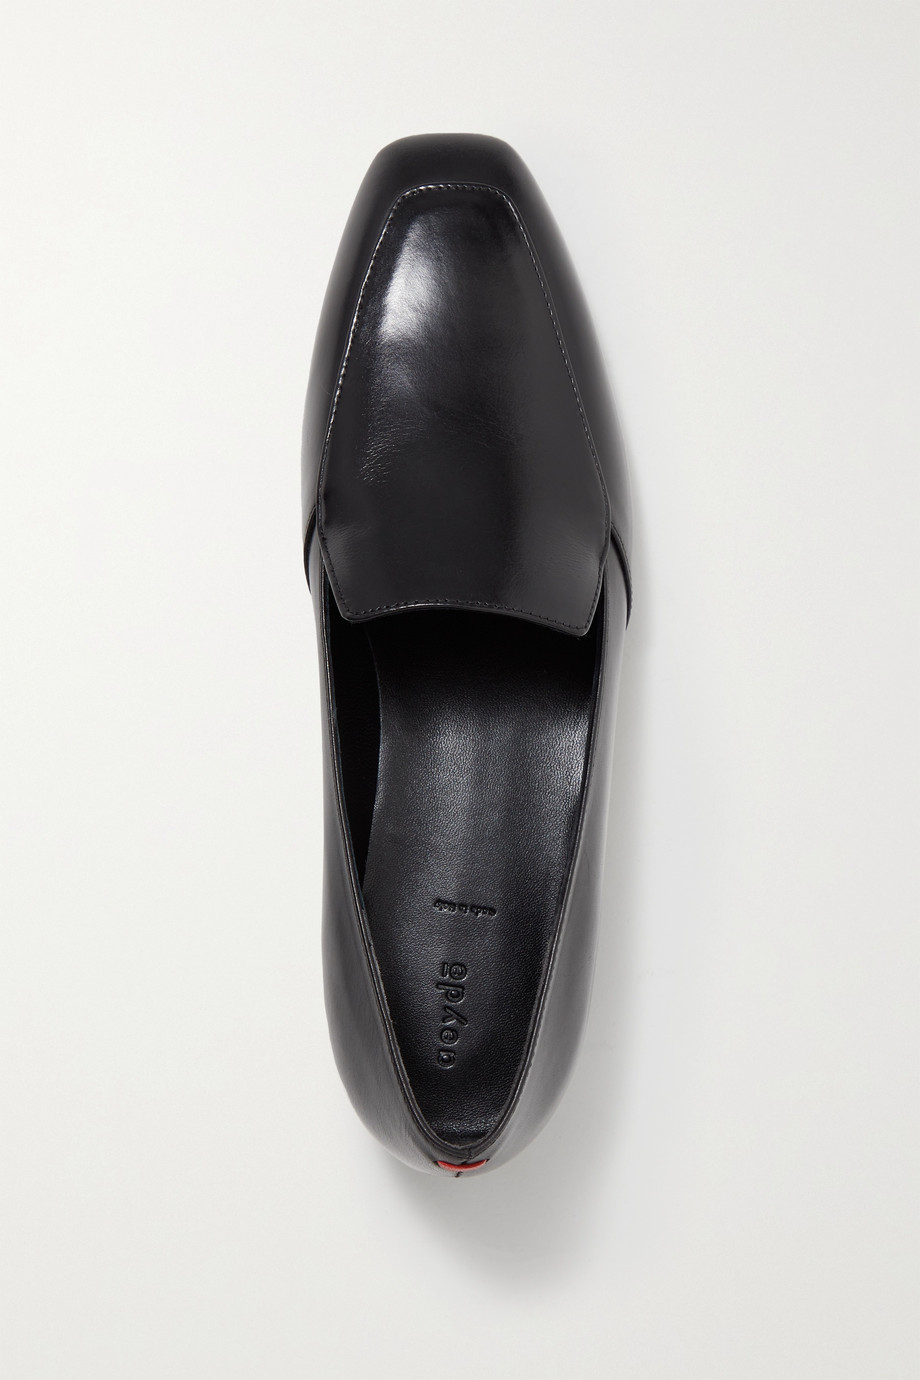 aeyde Angie leather loafers